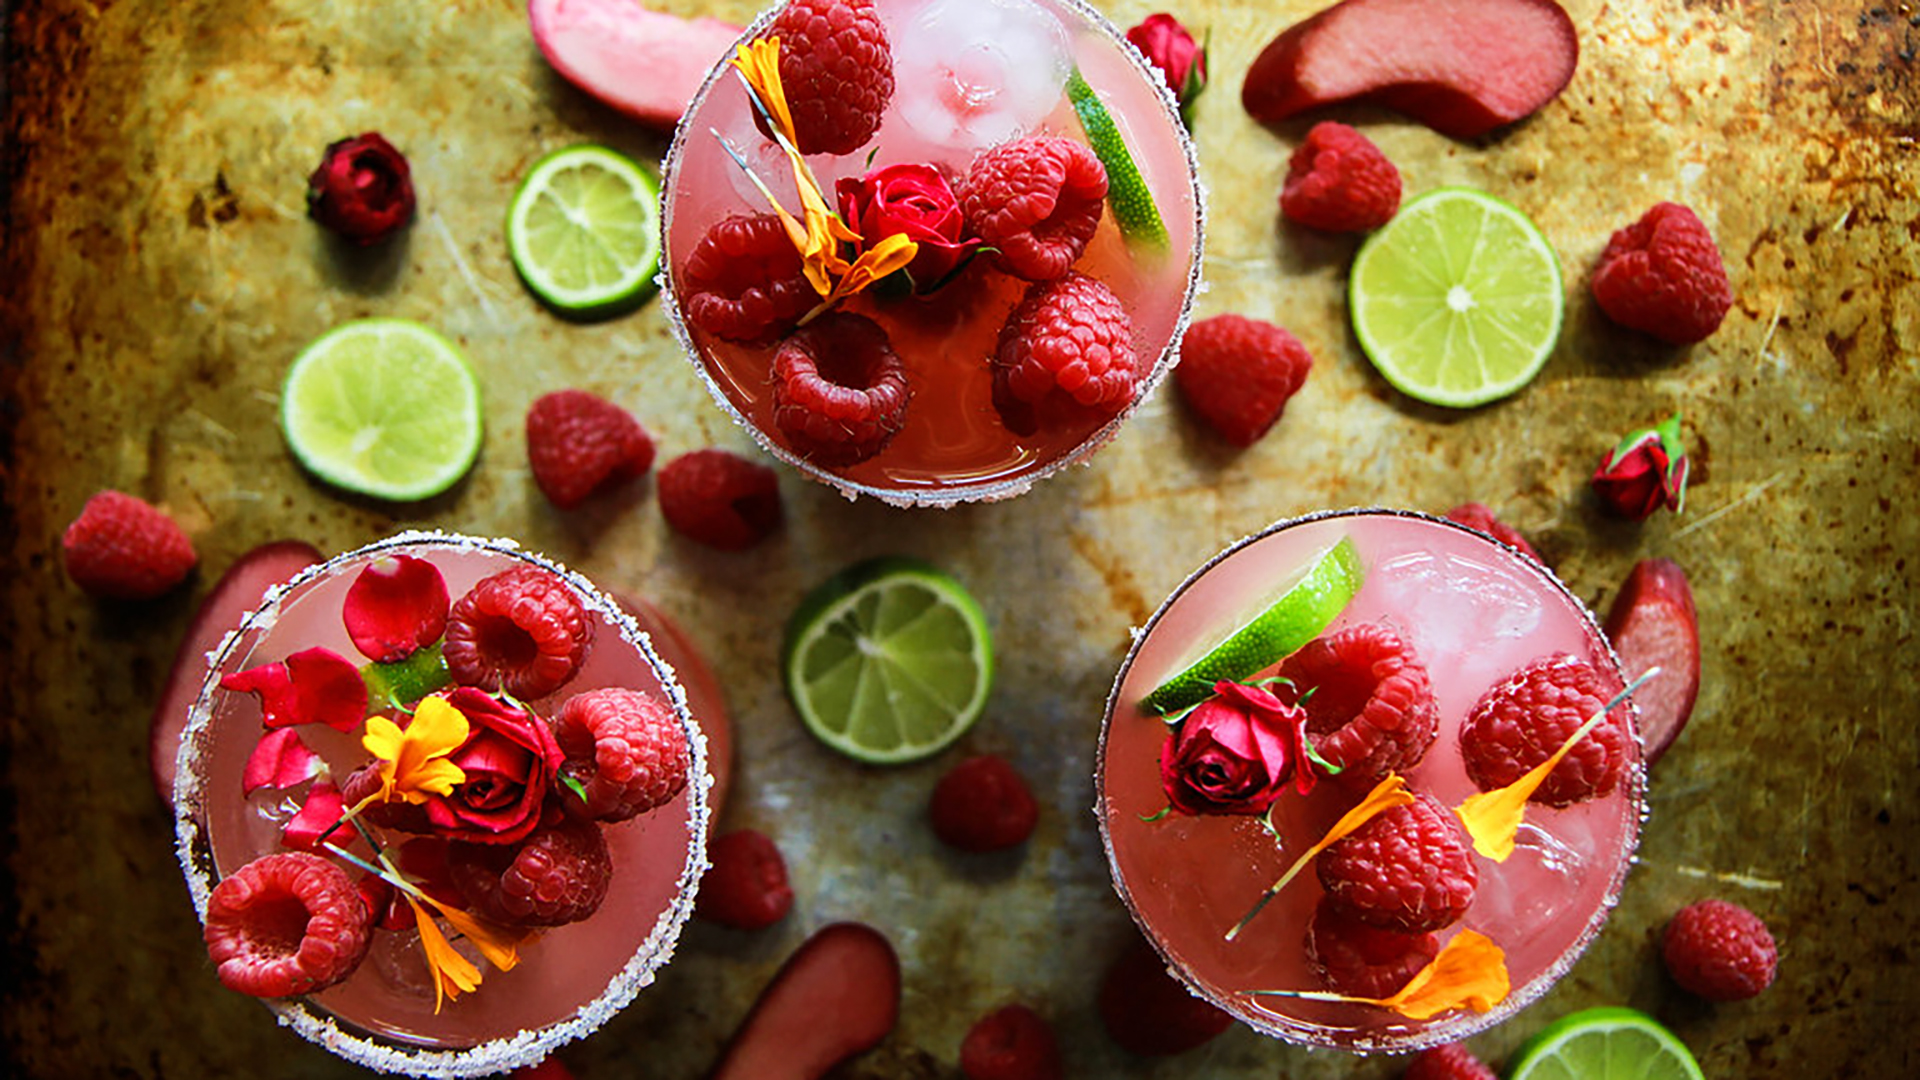 Frozen Margarita Recipes to Sure to Impress Your Friends (and Delight Your Tastebuds)